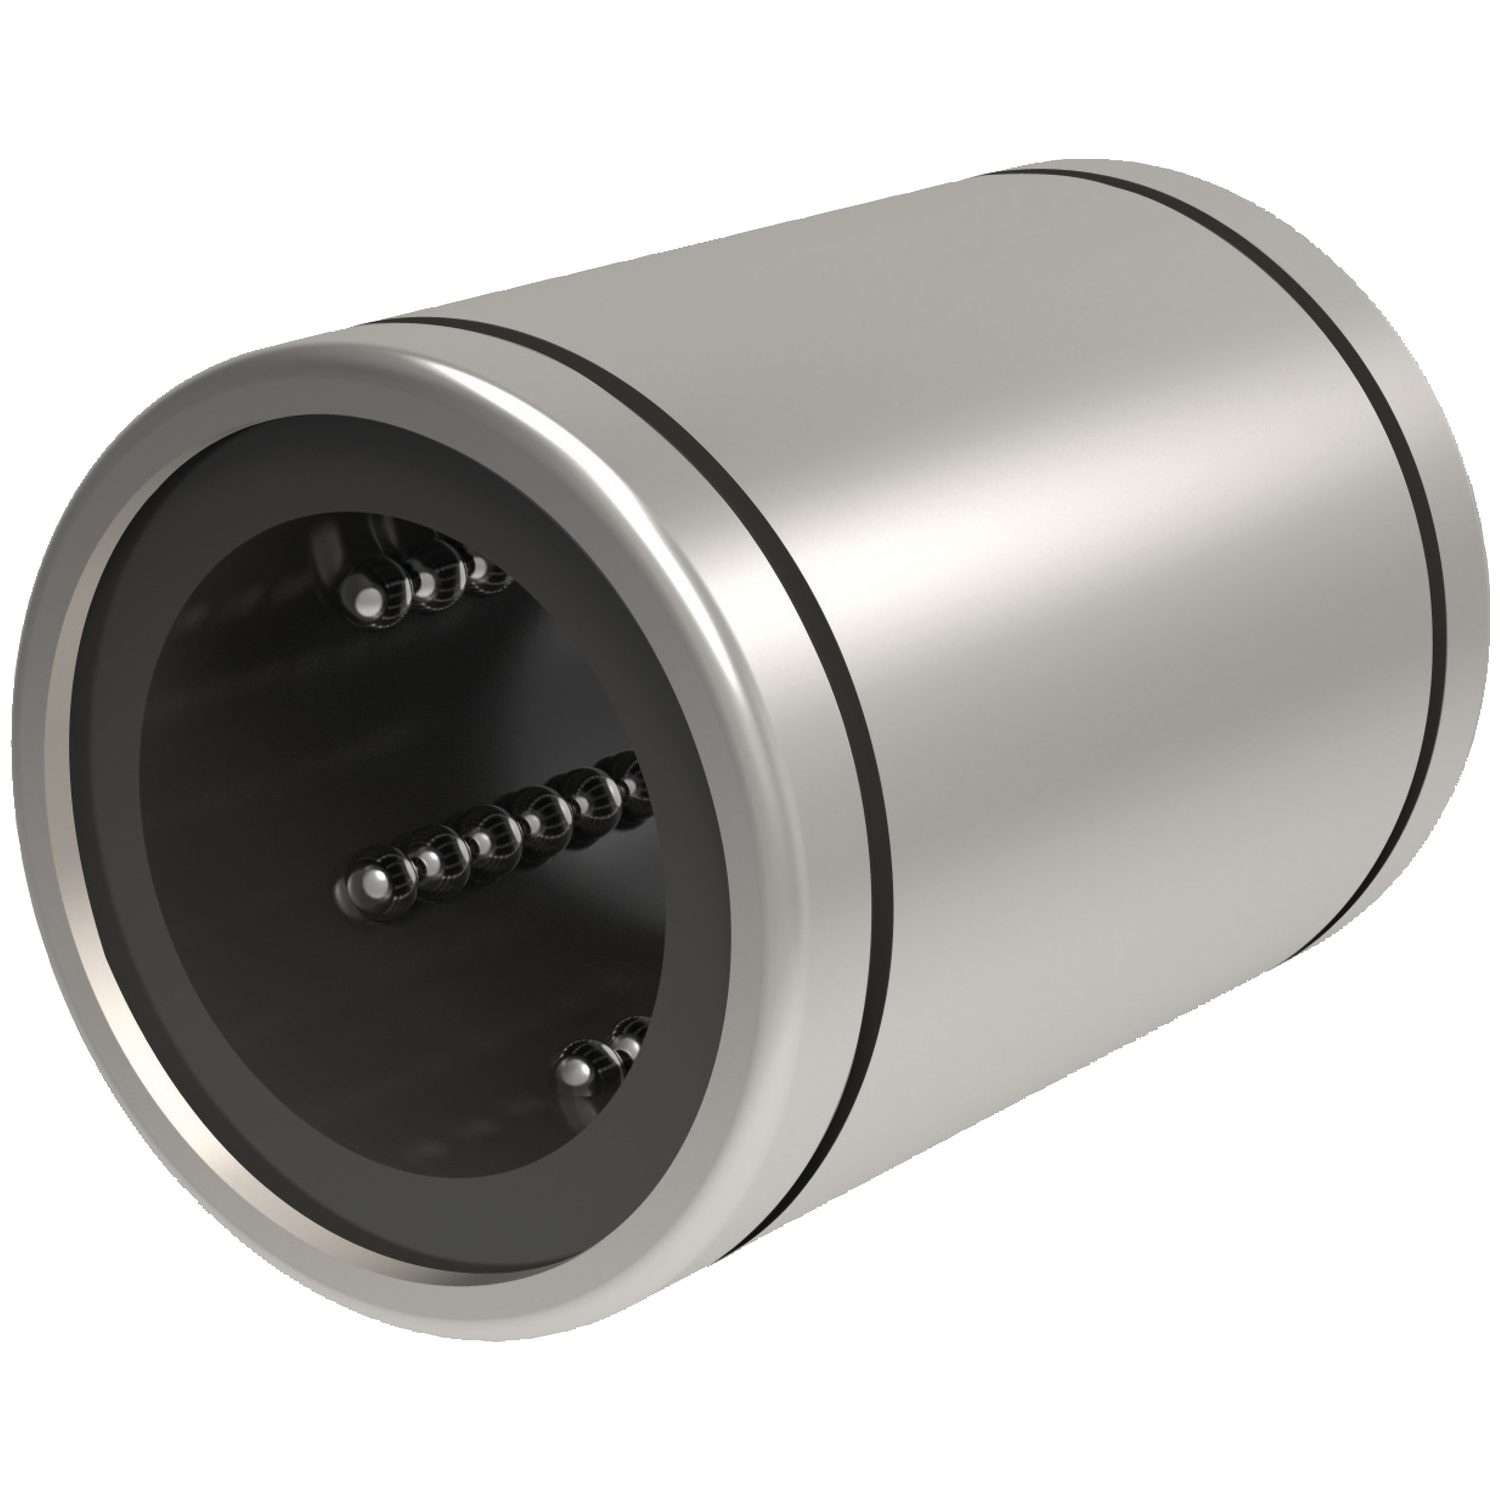 Stainless Ball Bushings Automotion Components also stock a wide range of stainless Linear Bearings.